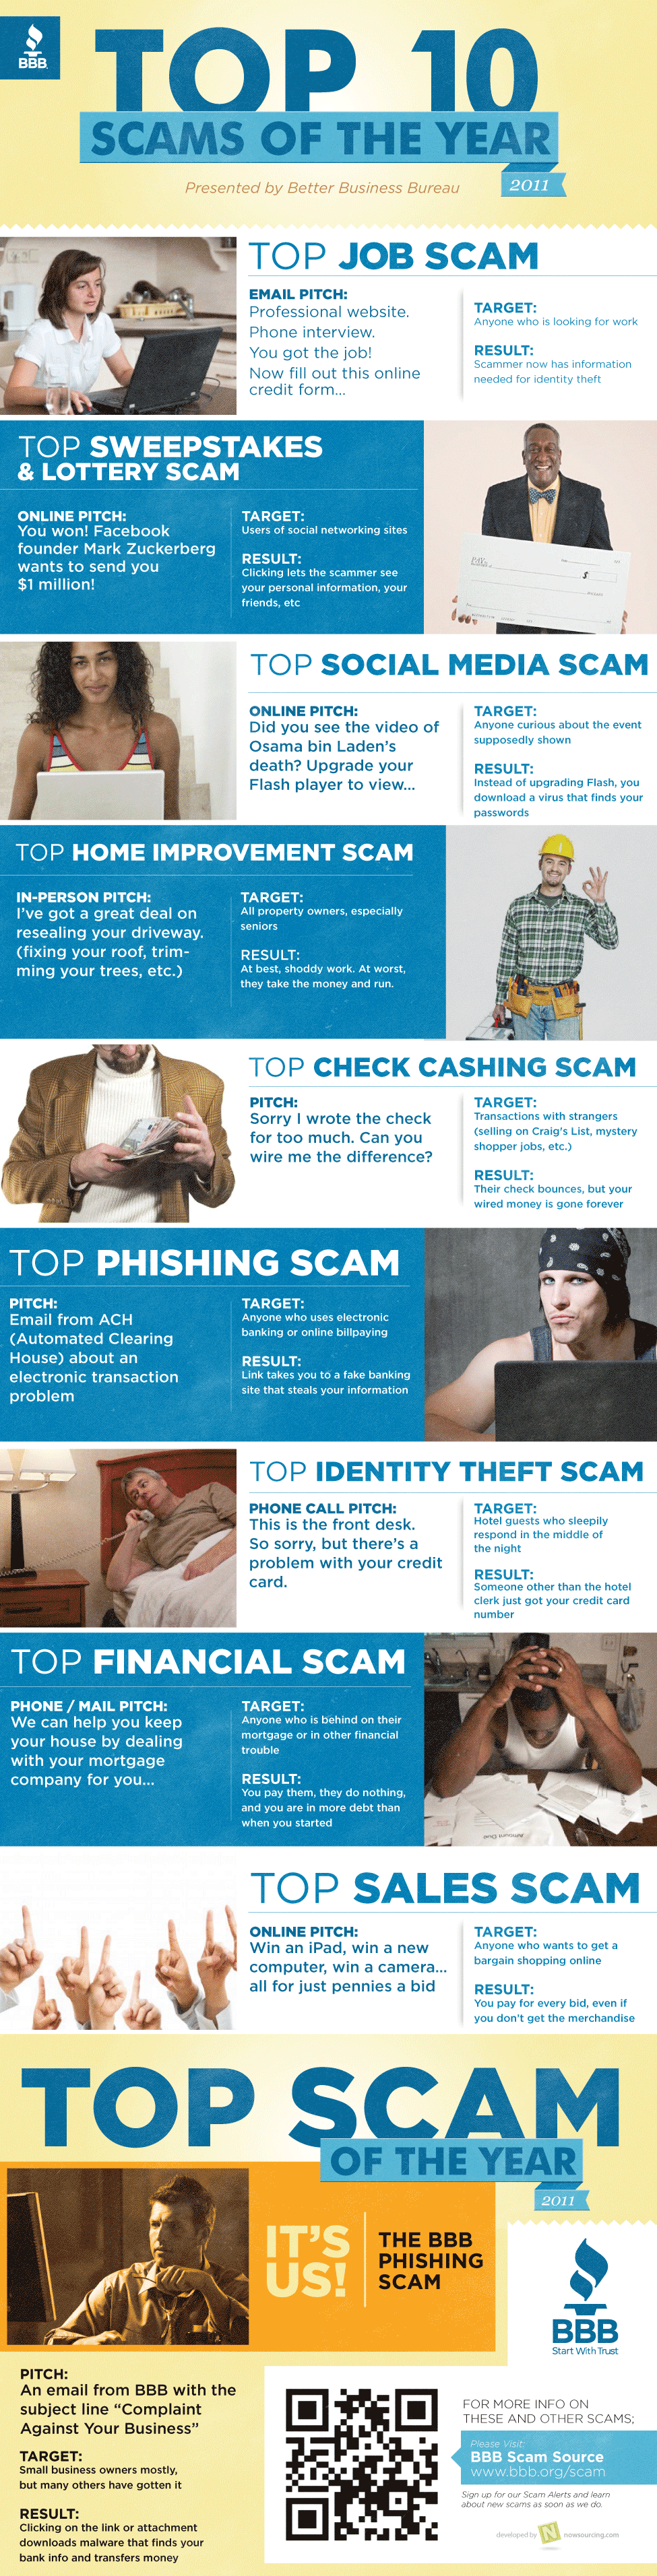 Top Scams in the United States